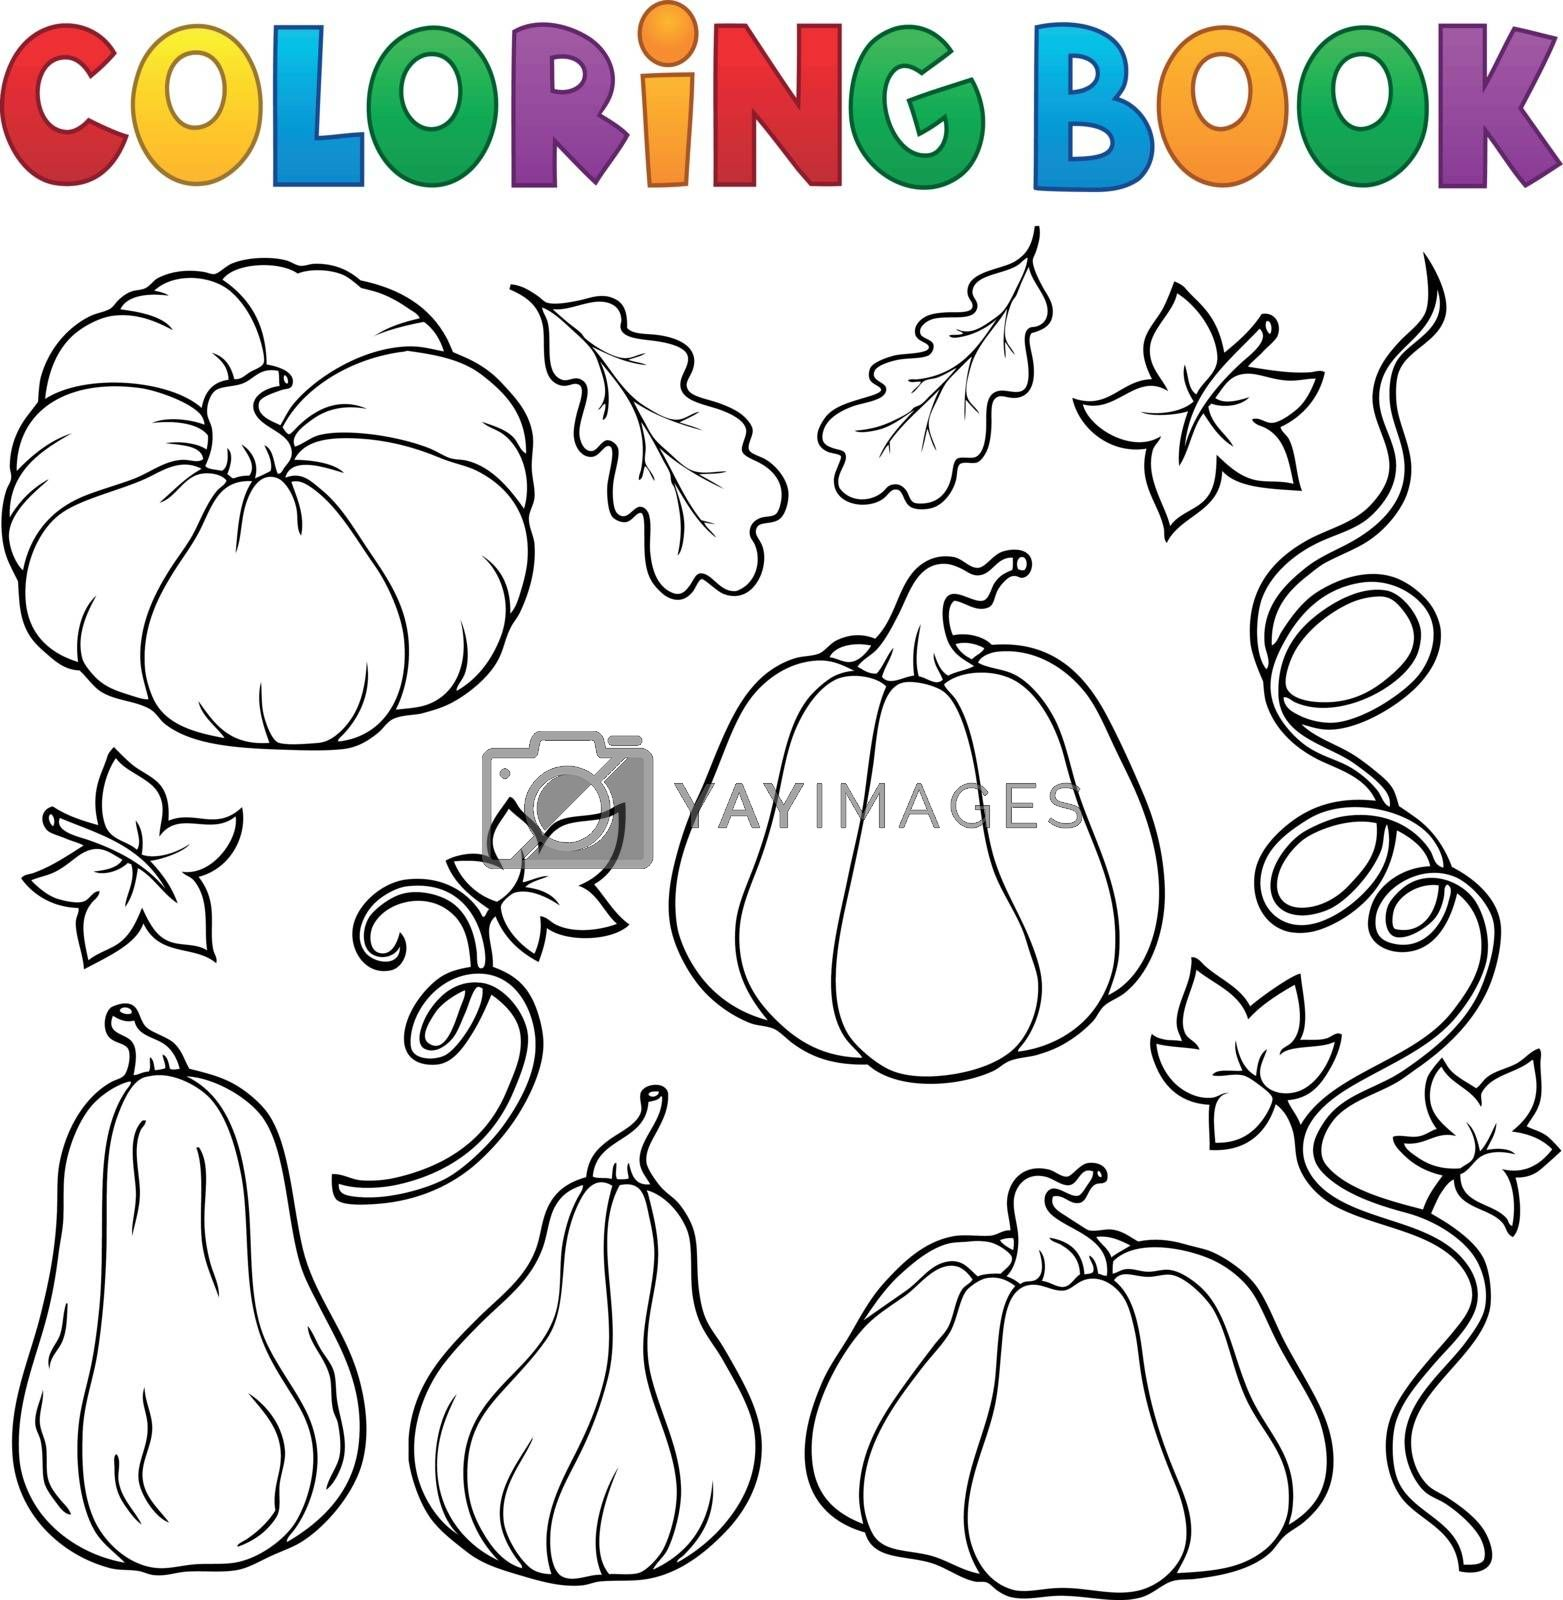 Coloring book pumpkins collection 1 - eps10 vector illustration.